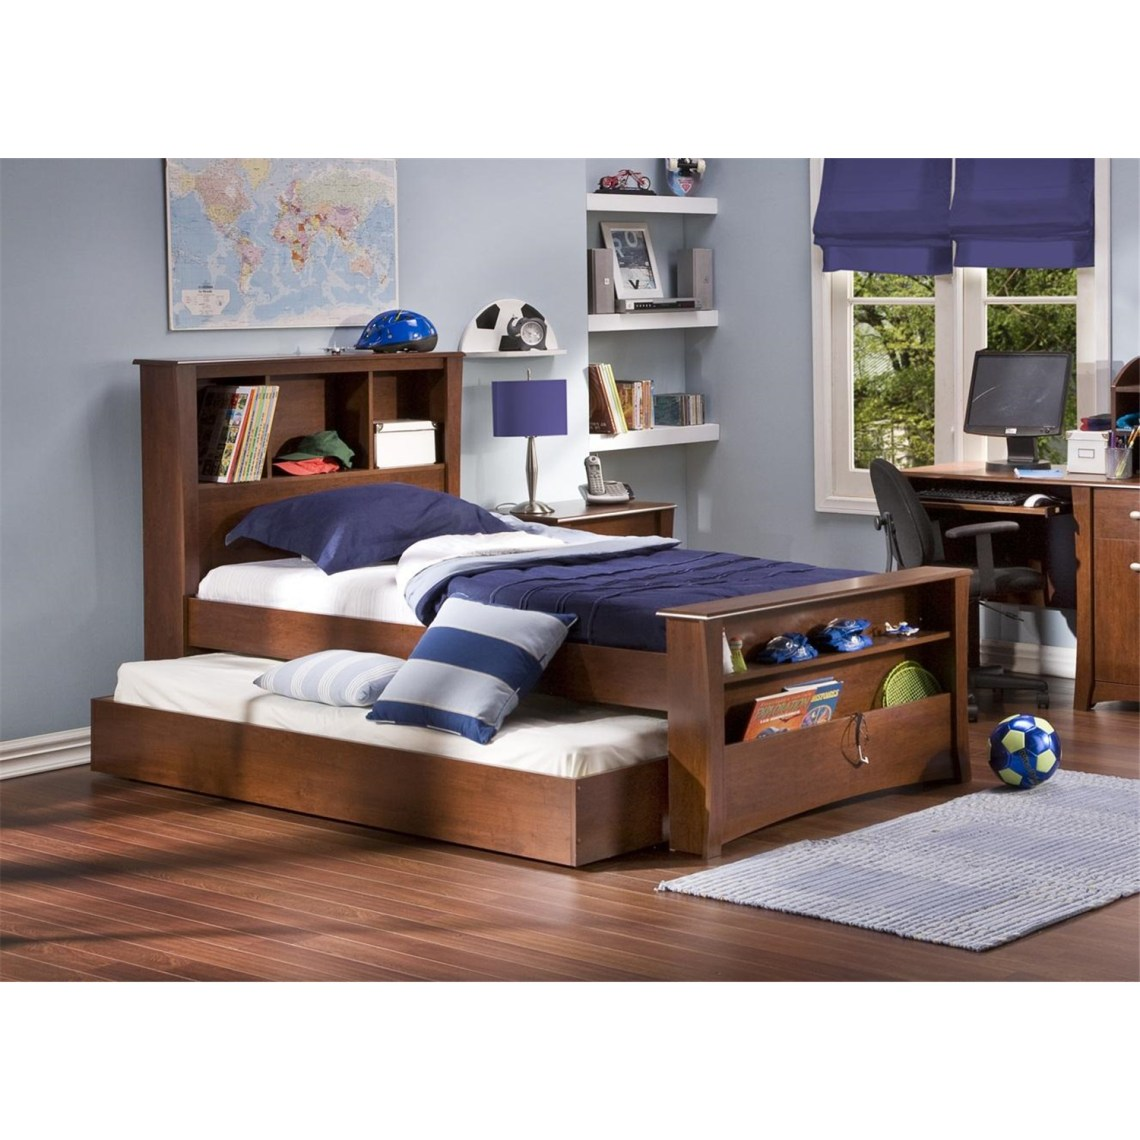 Image Result For Office Furniture Stores Vancouver